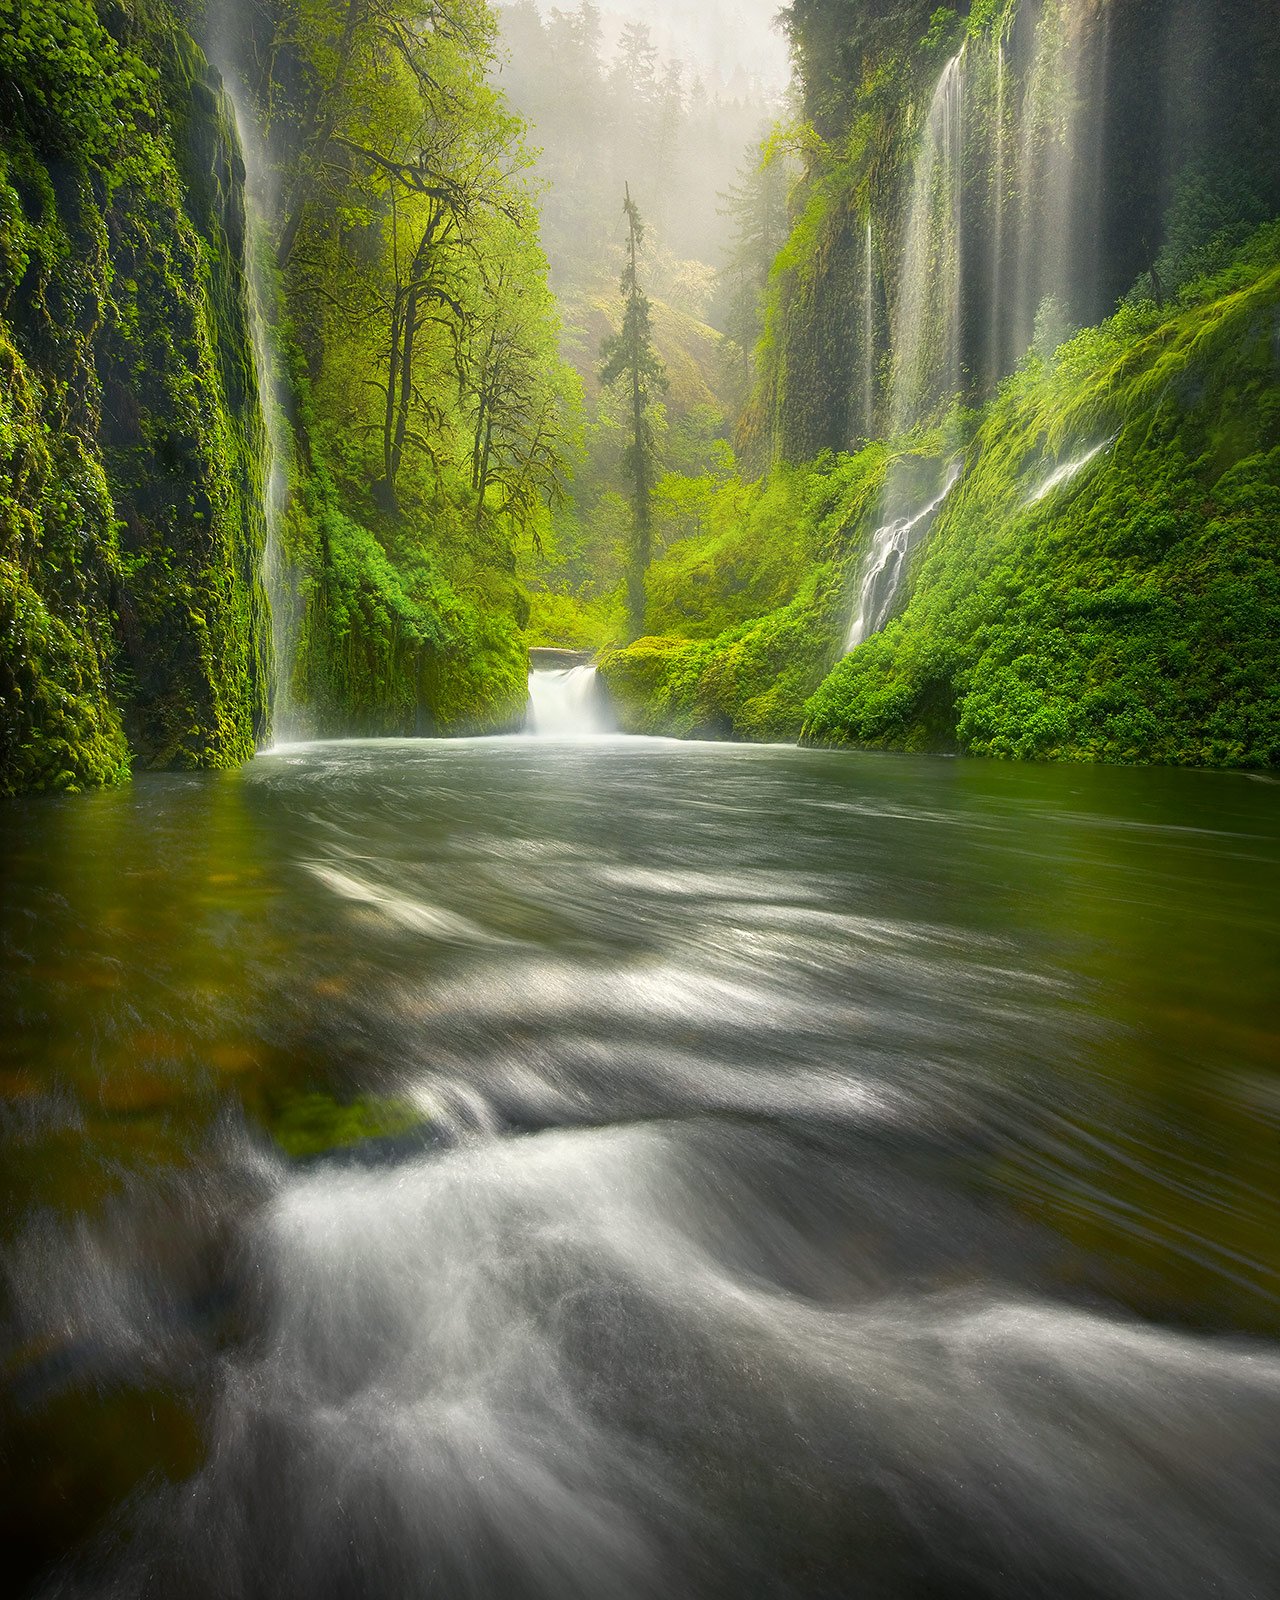 amazing, waterfalls, rainforest, lush, oregon, columbia gorge, rain, photo